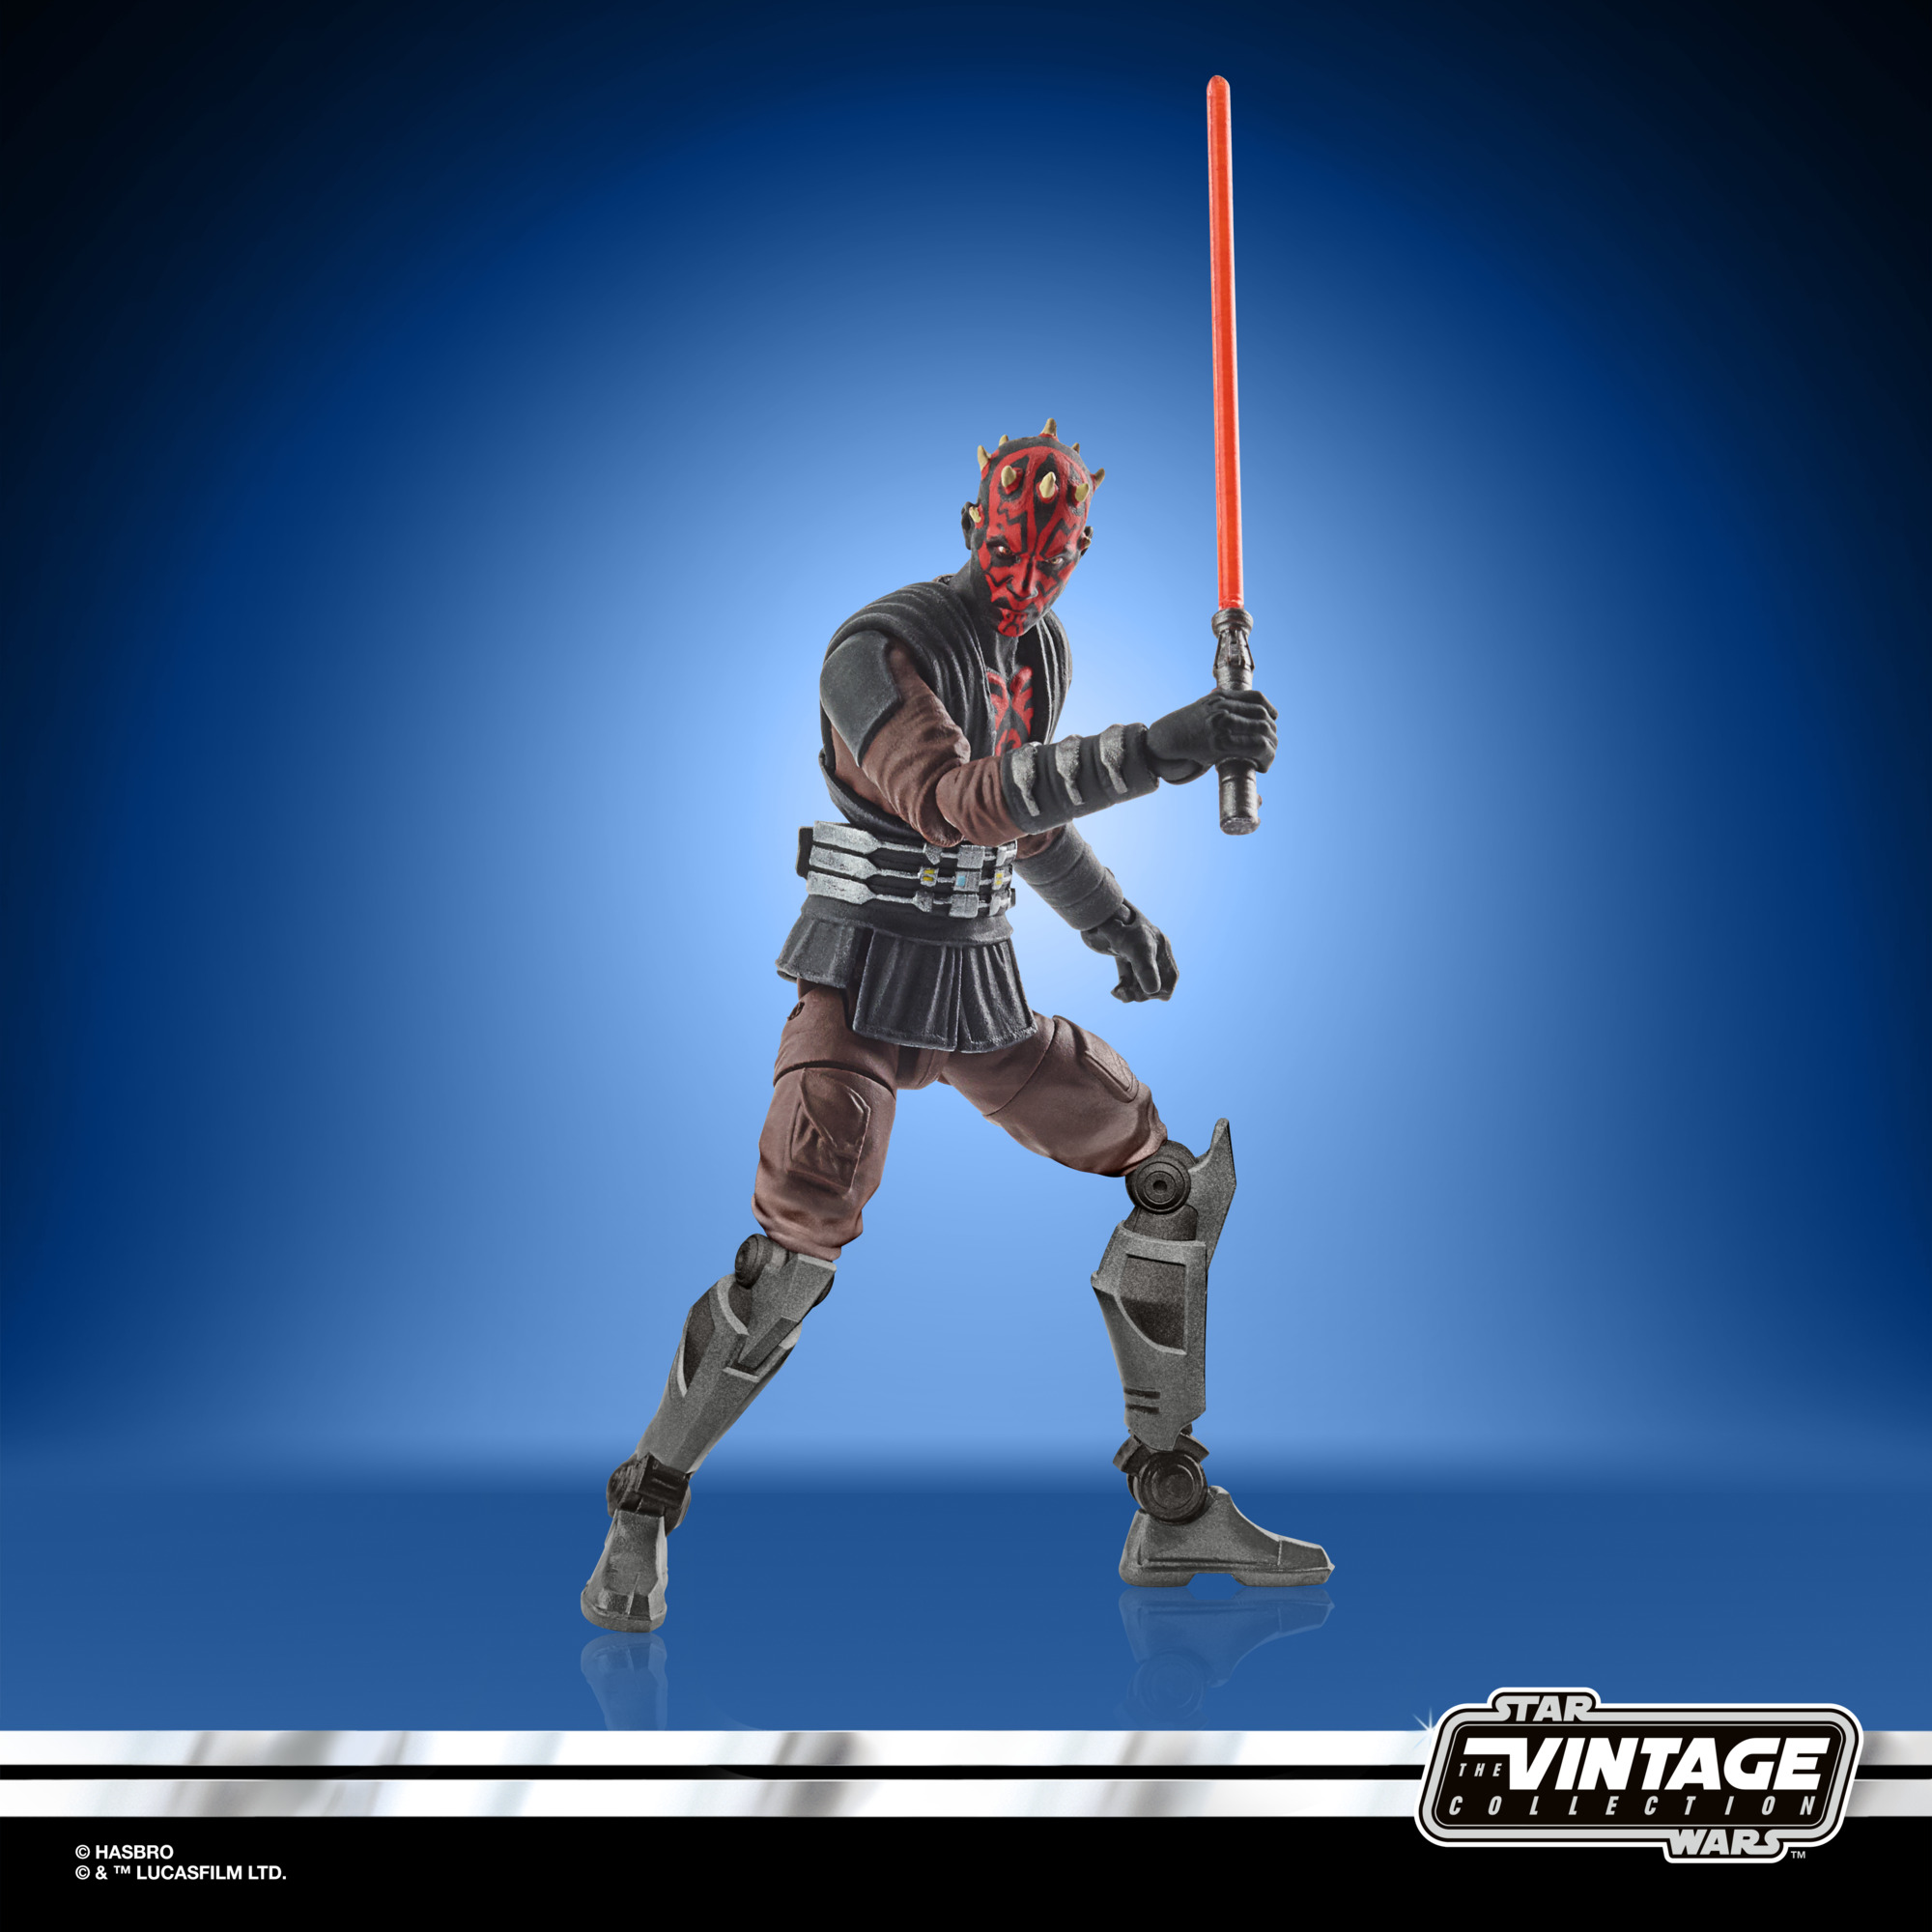 STAR WARS THE VINTAGE COLLECTION 3.75-INCH DARTH MAUL (MANDALORE) Figure – oop(1)